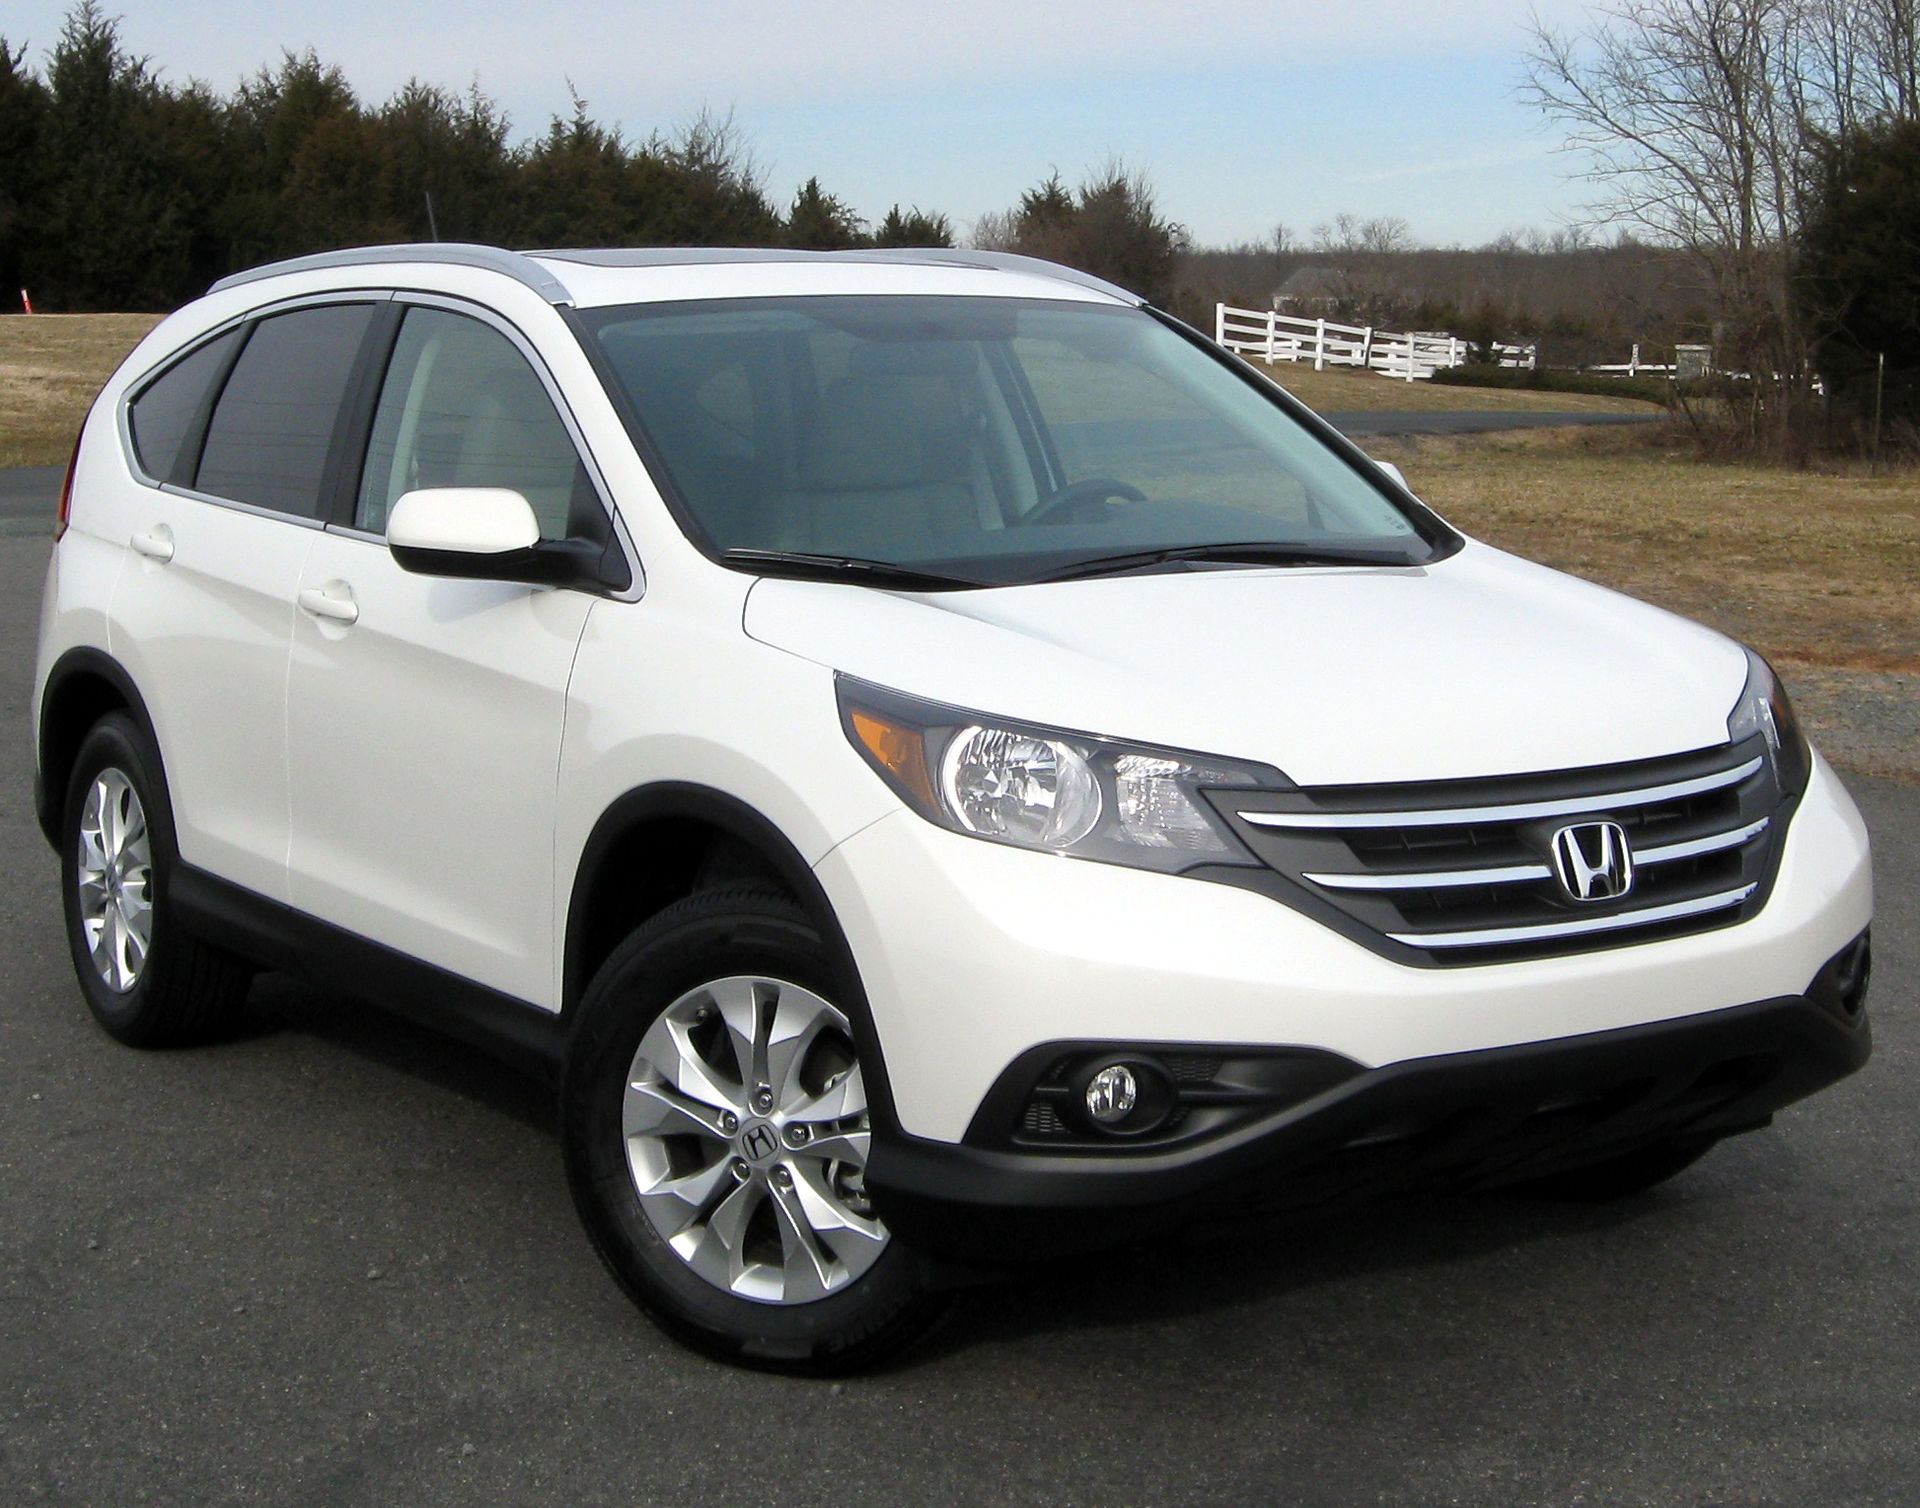 Honda cr v wikipedia for Is a honda crv a suv